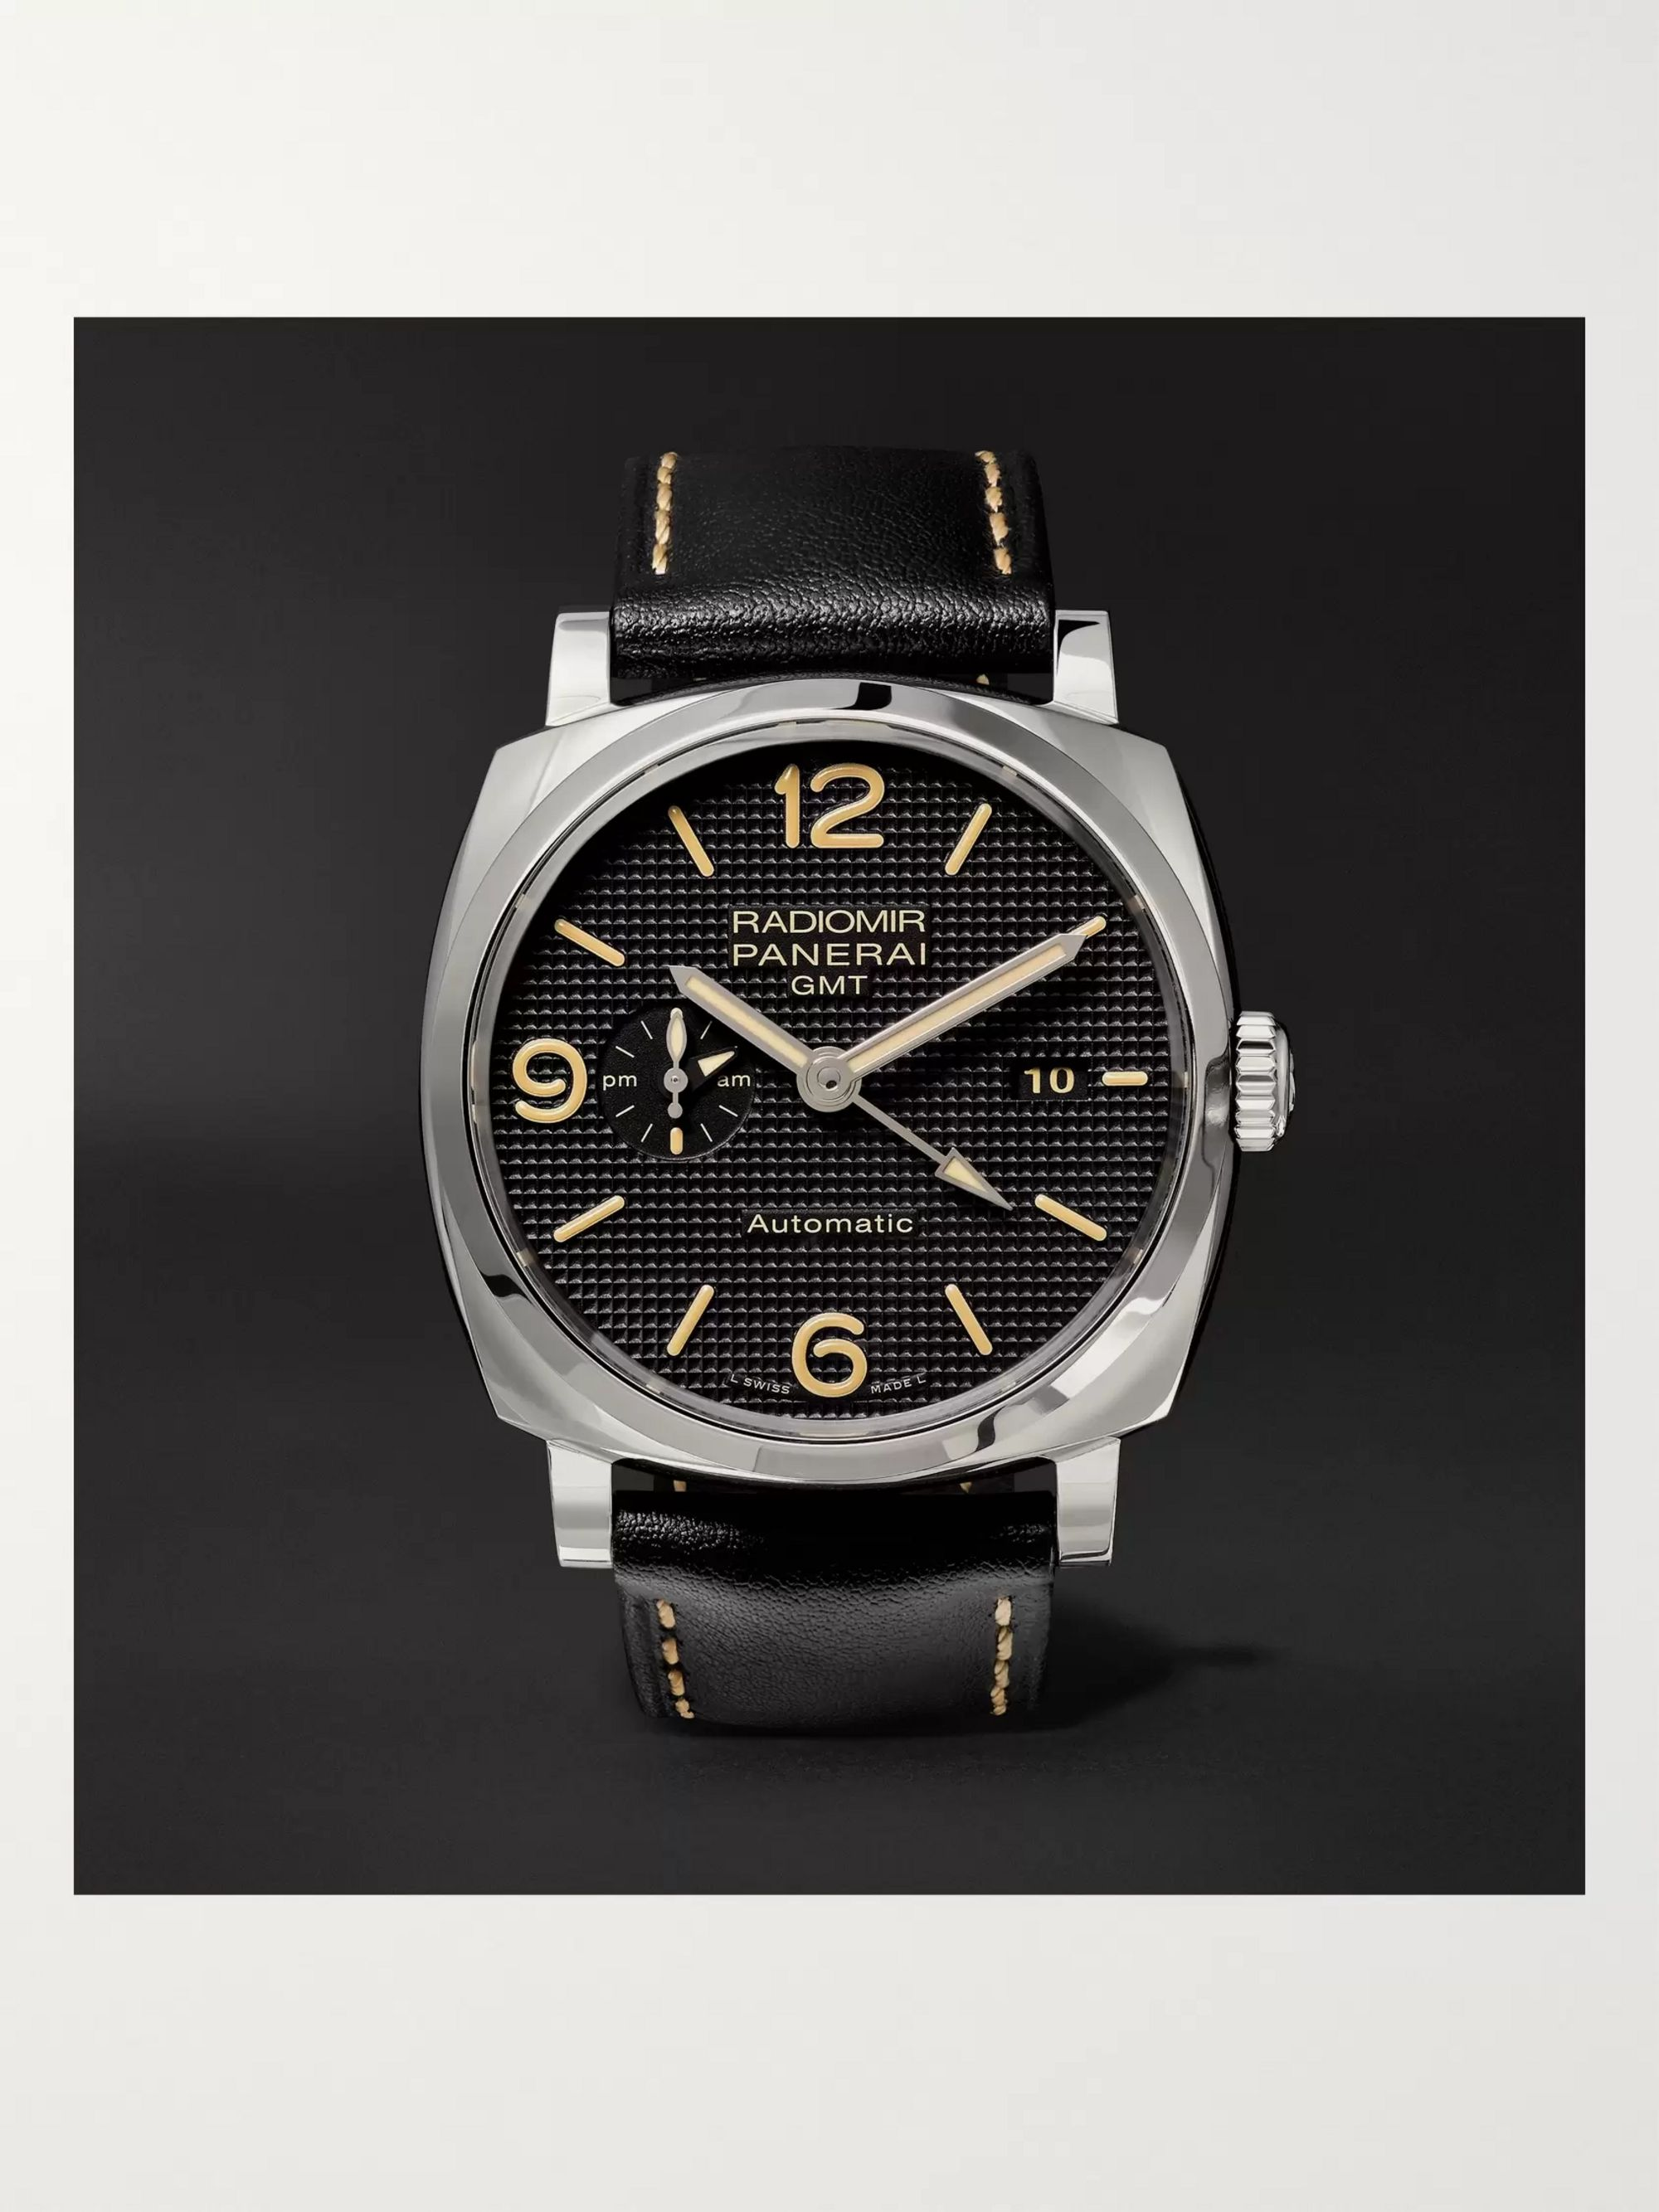 Panerai Radiomir 1940 3 Days GMT Automatic Acciaio 45mm Stainless Steel and Leather Watch, Ref. No. PAM00627